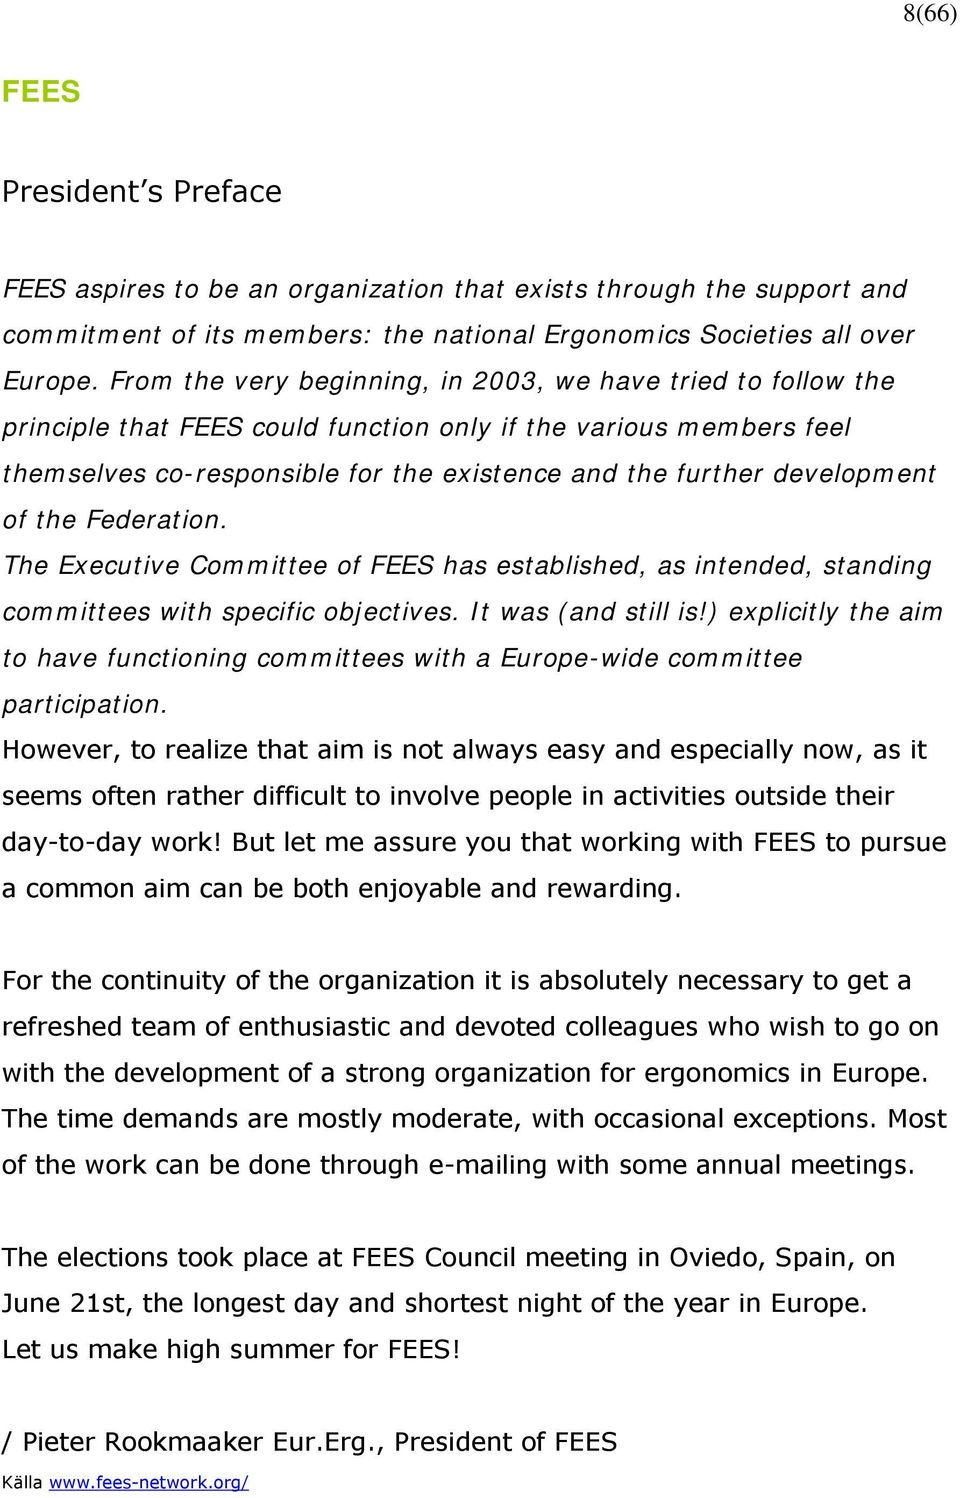 development of the Federation. The Executive Committee of FEES has established, as intended, standing committees with specific objectives. It was (and still is!